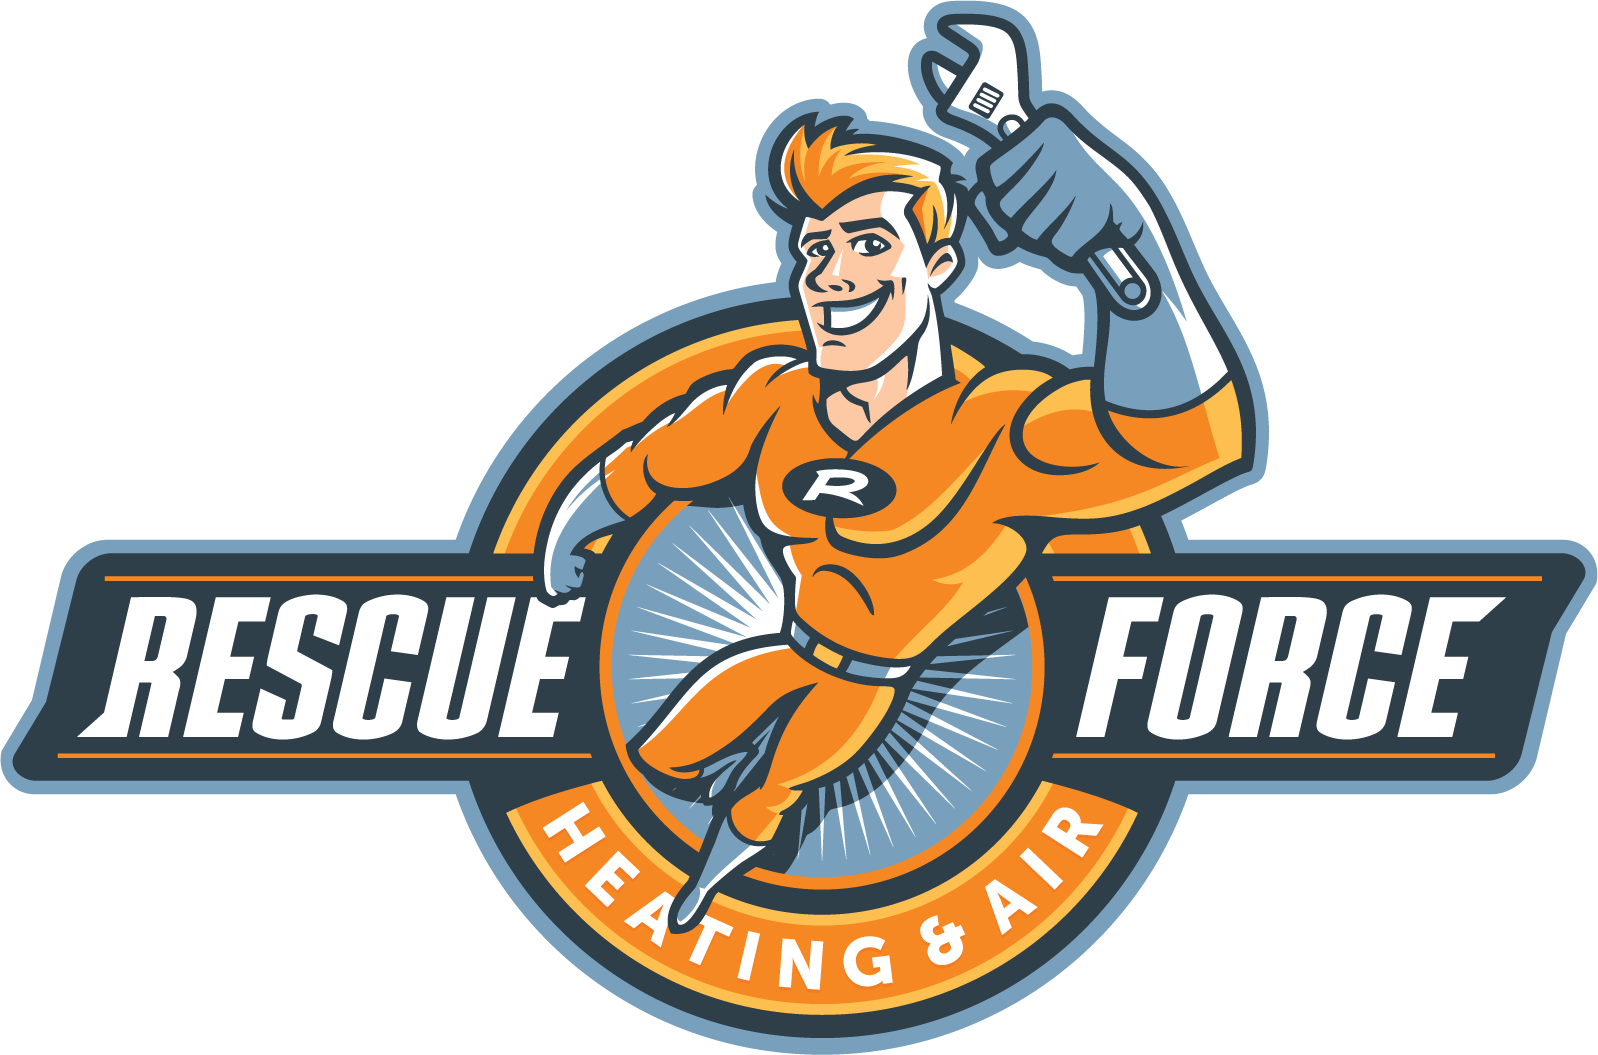 Rescue Force Logo